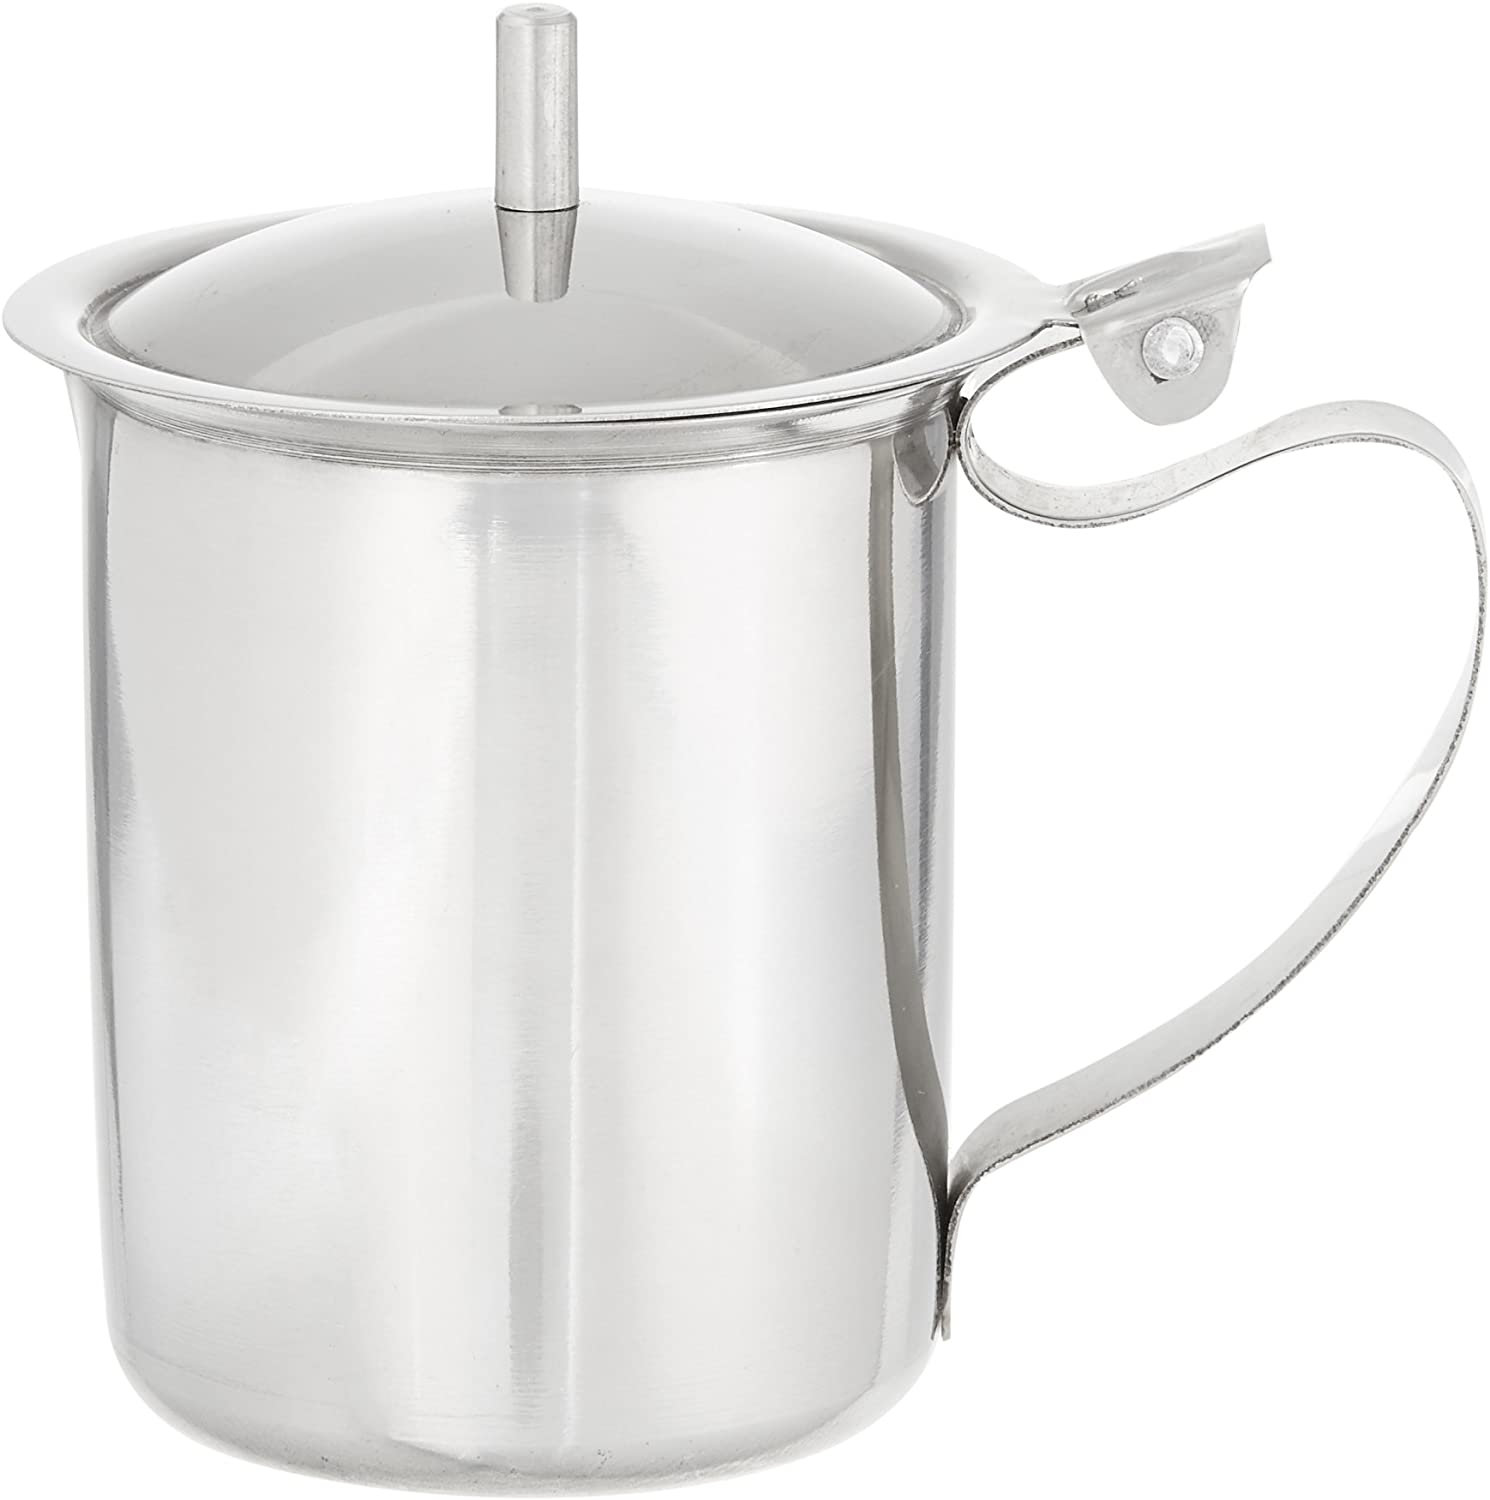 Winco SCT-10 Stainless Steel Creamer with Cover, 10-Ounce